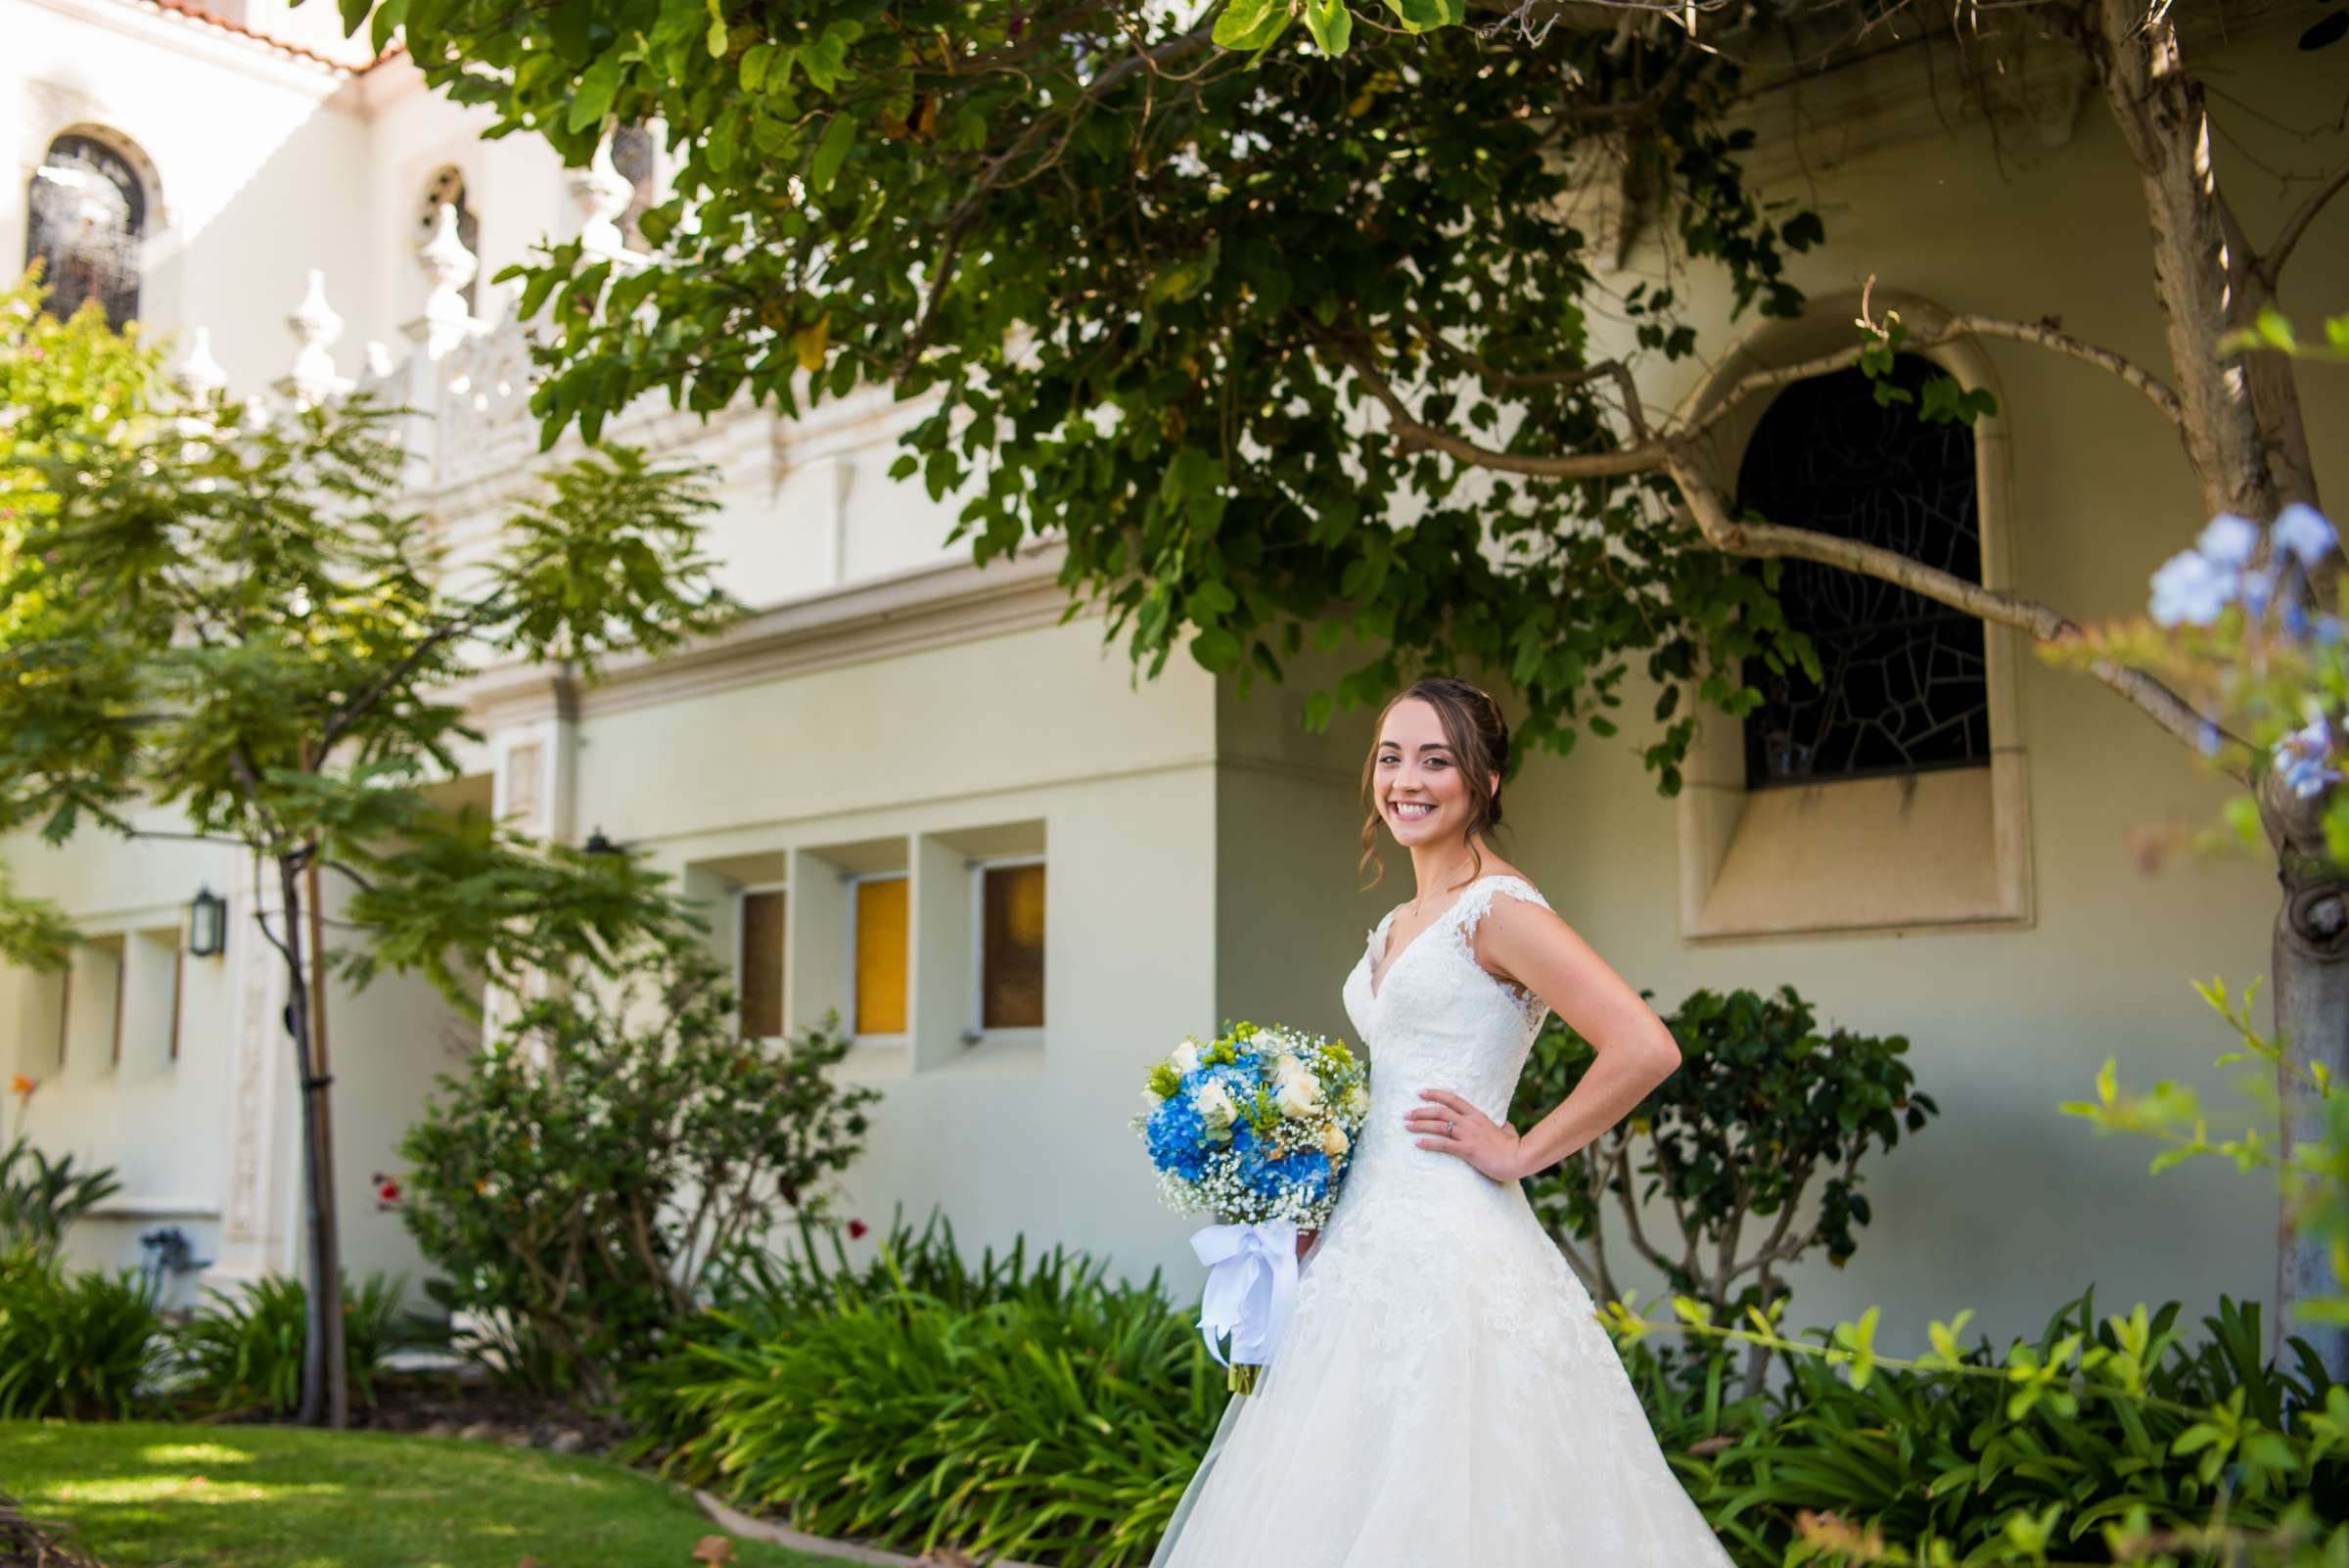 The Immaculata Wedding, Arianna and Jonah Wedding Photo #33 by True Photography